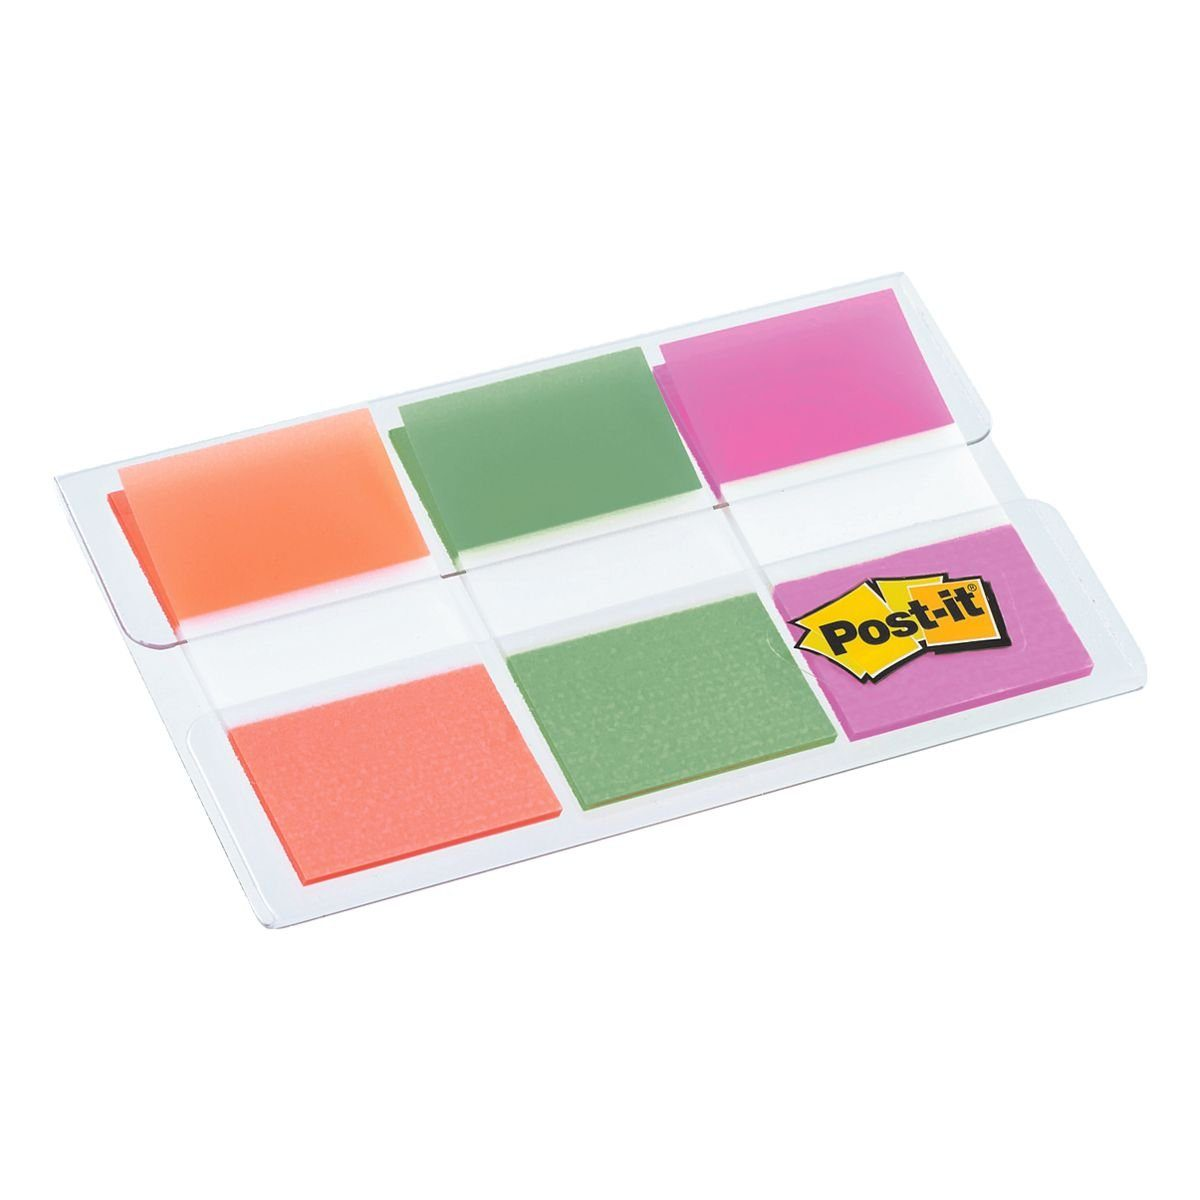 Post-it Index Haftstreifen-Etui 43,2 x 25,4 mm, grün/orange/rosa »Index«